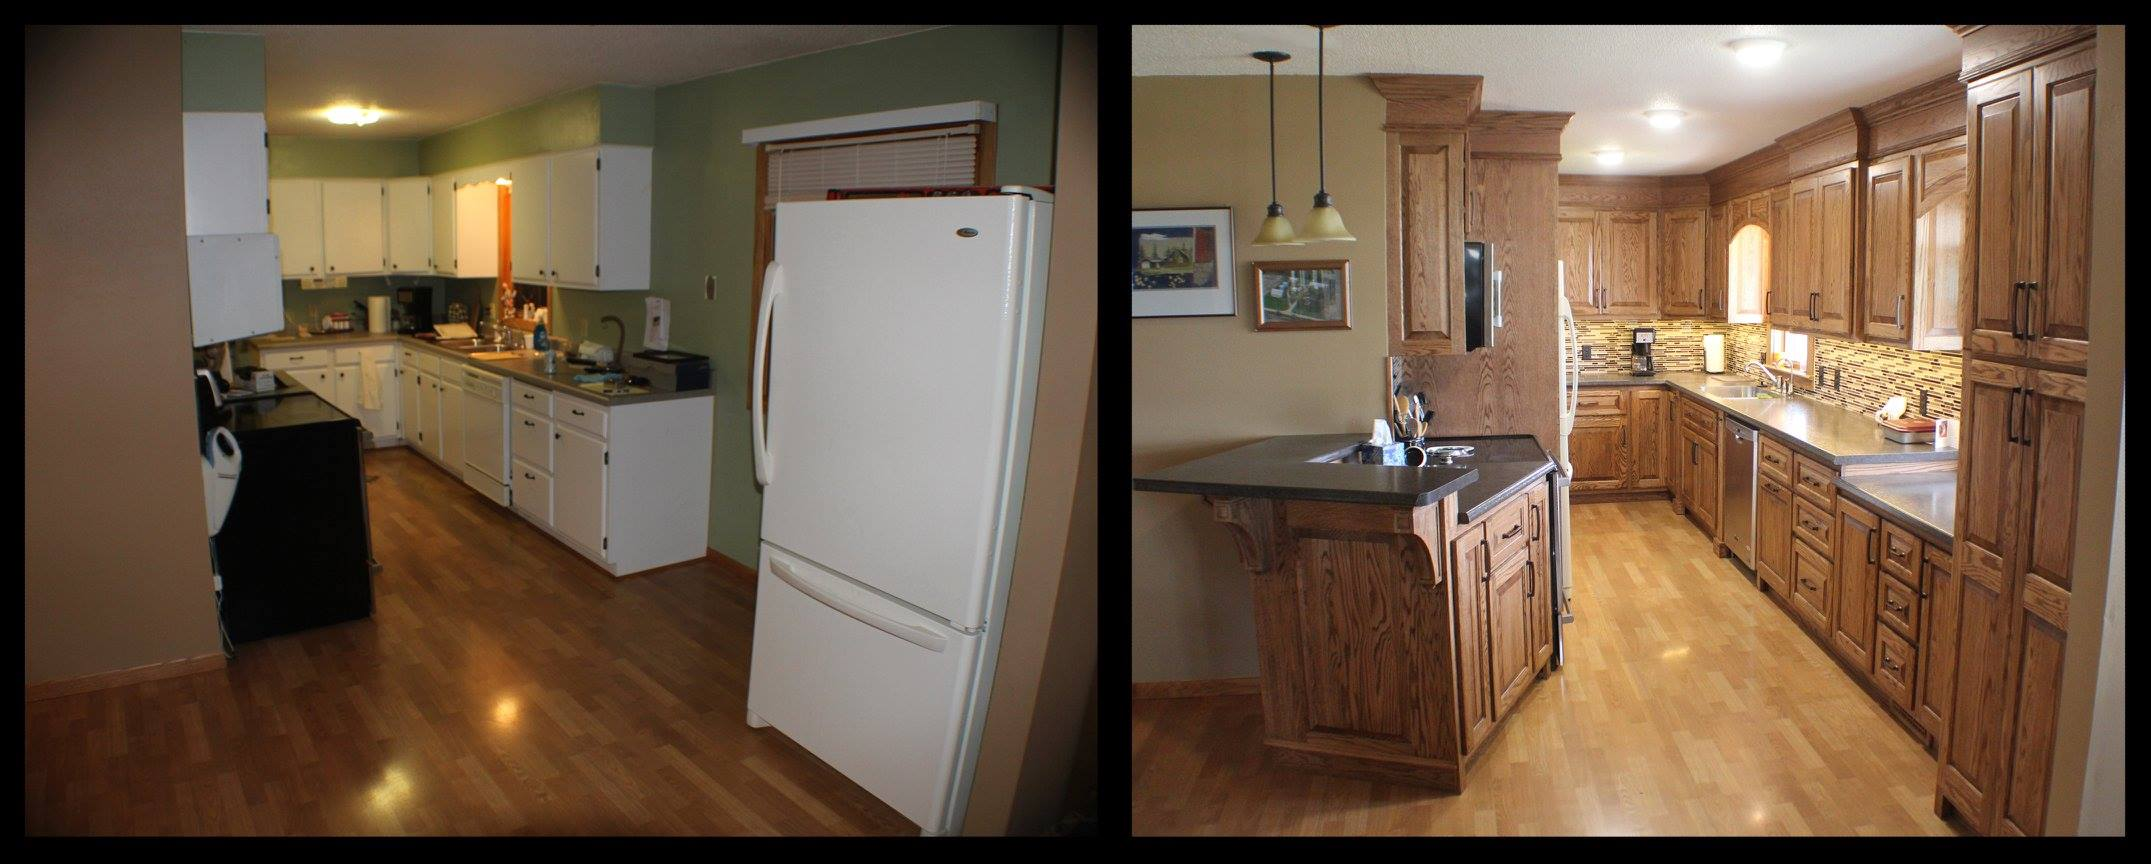 b4 and after-kitchen